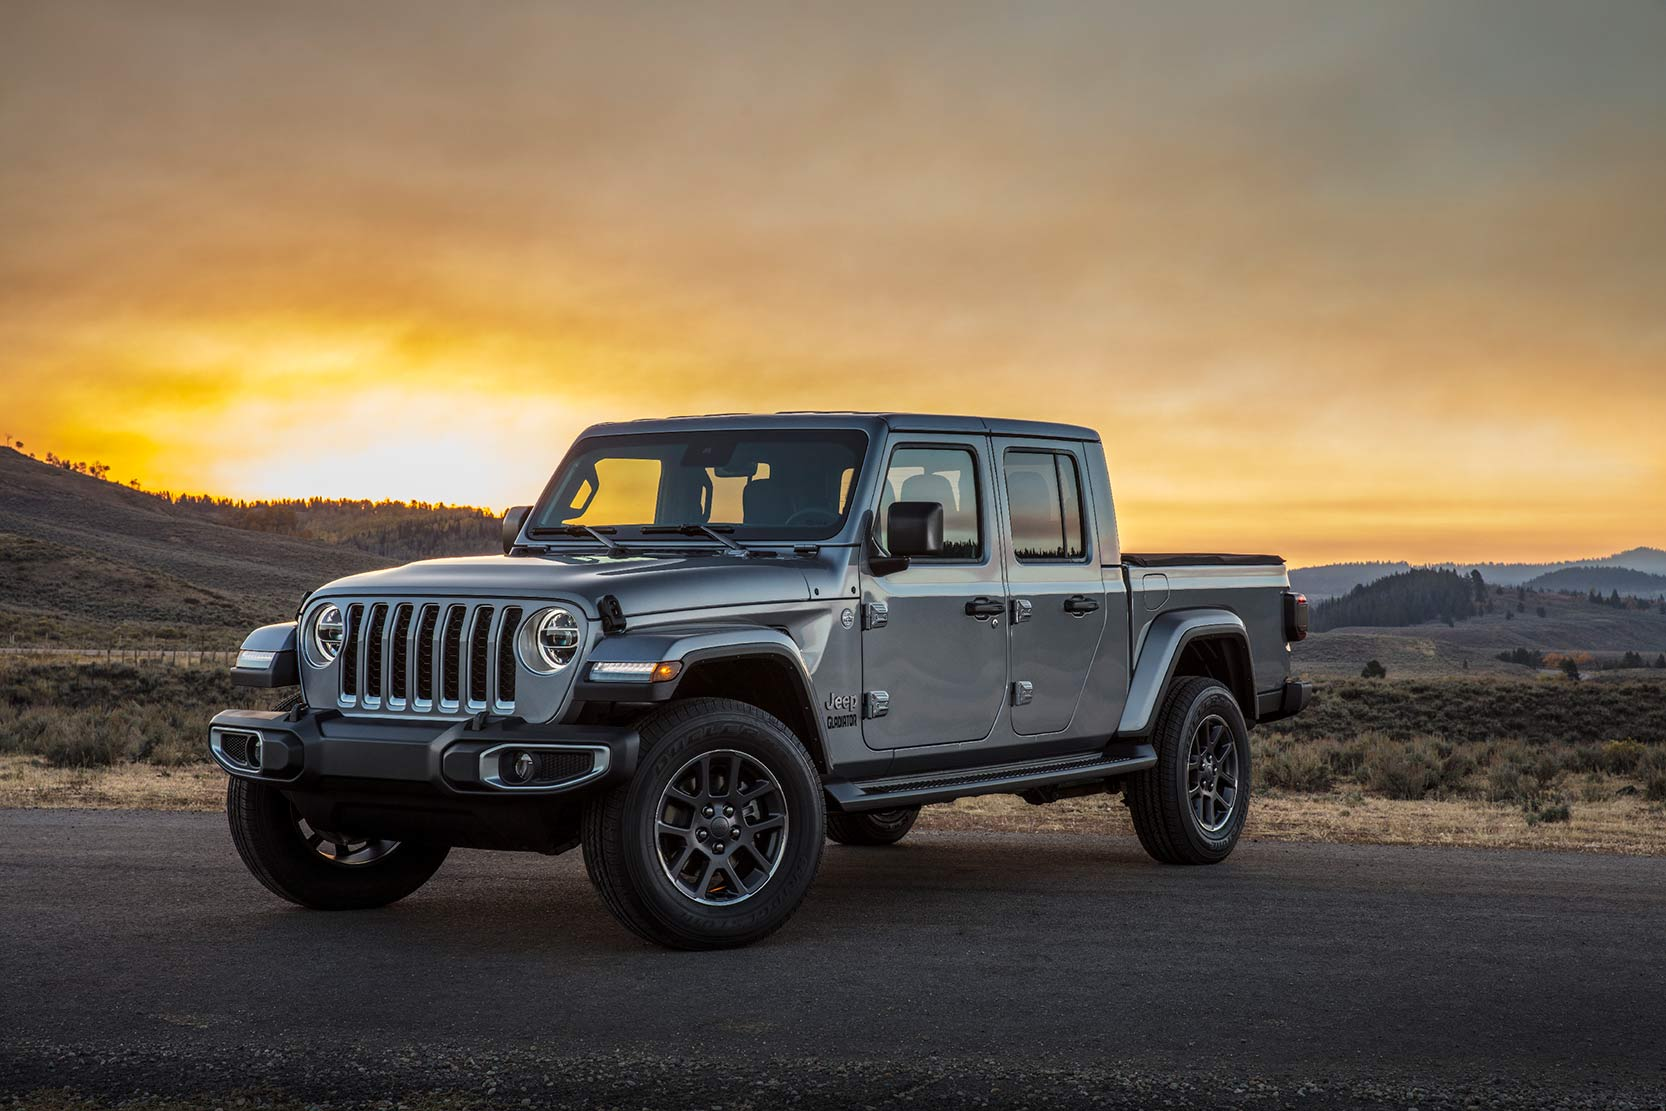 Exterieur_Jeep-Gladiator_107